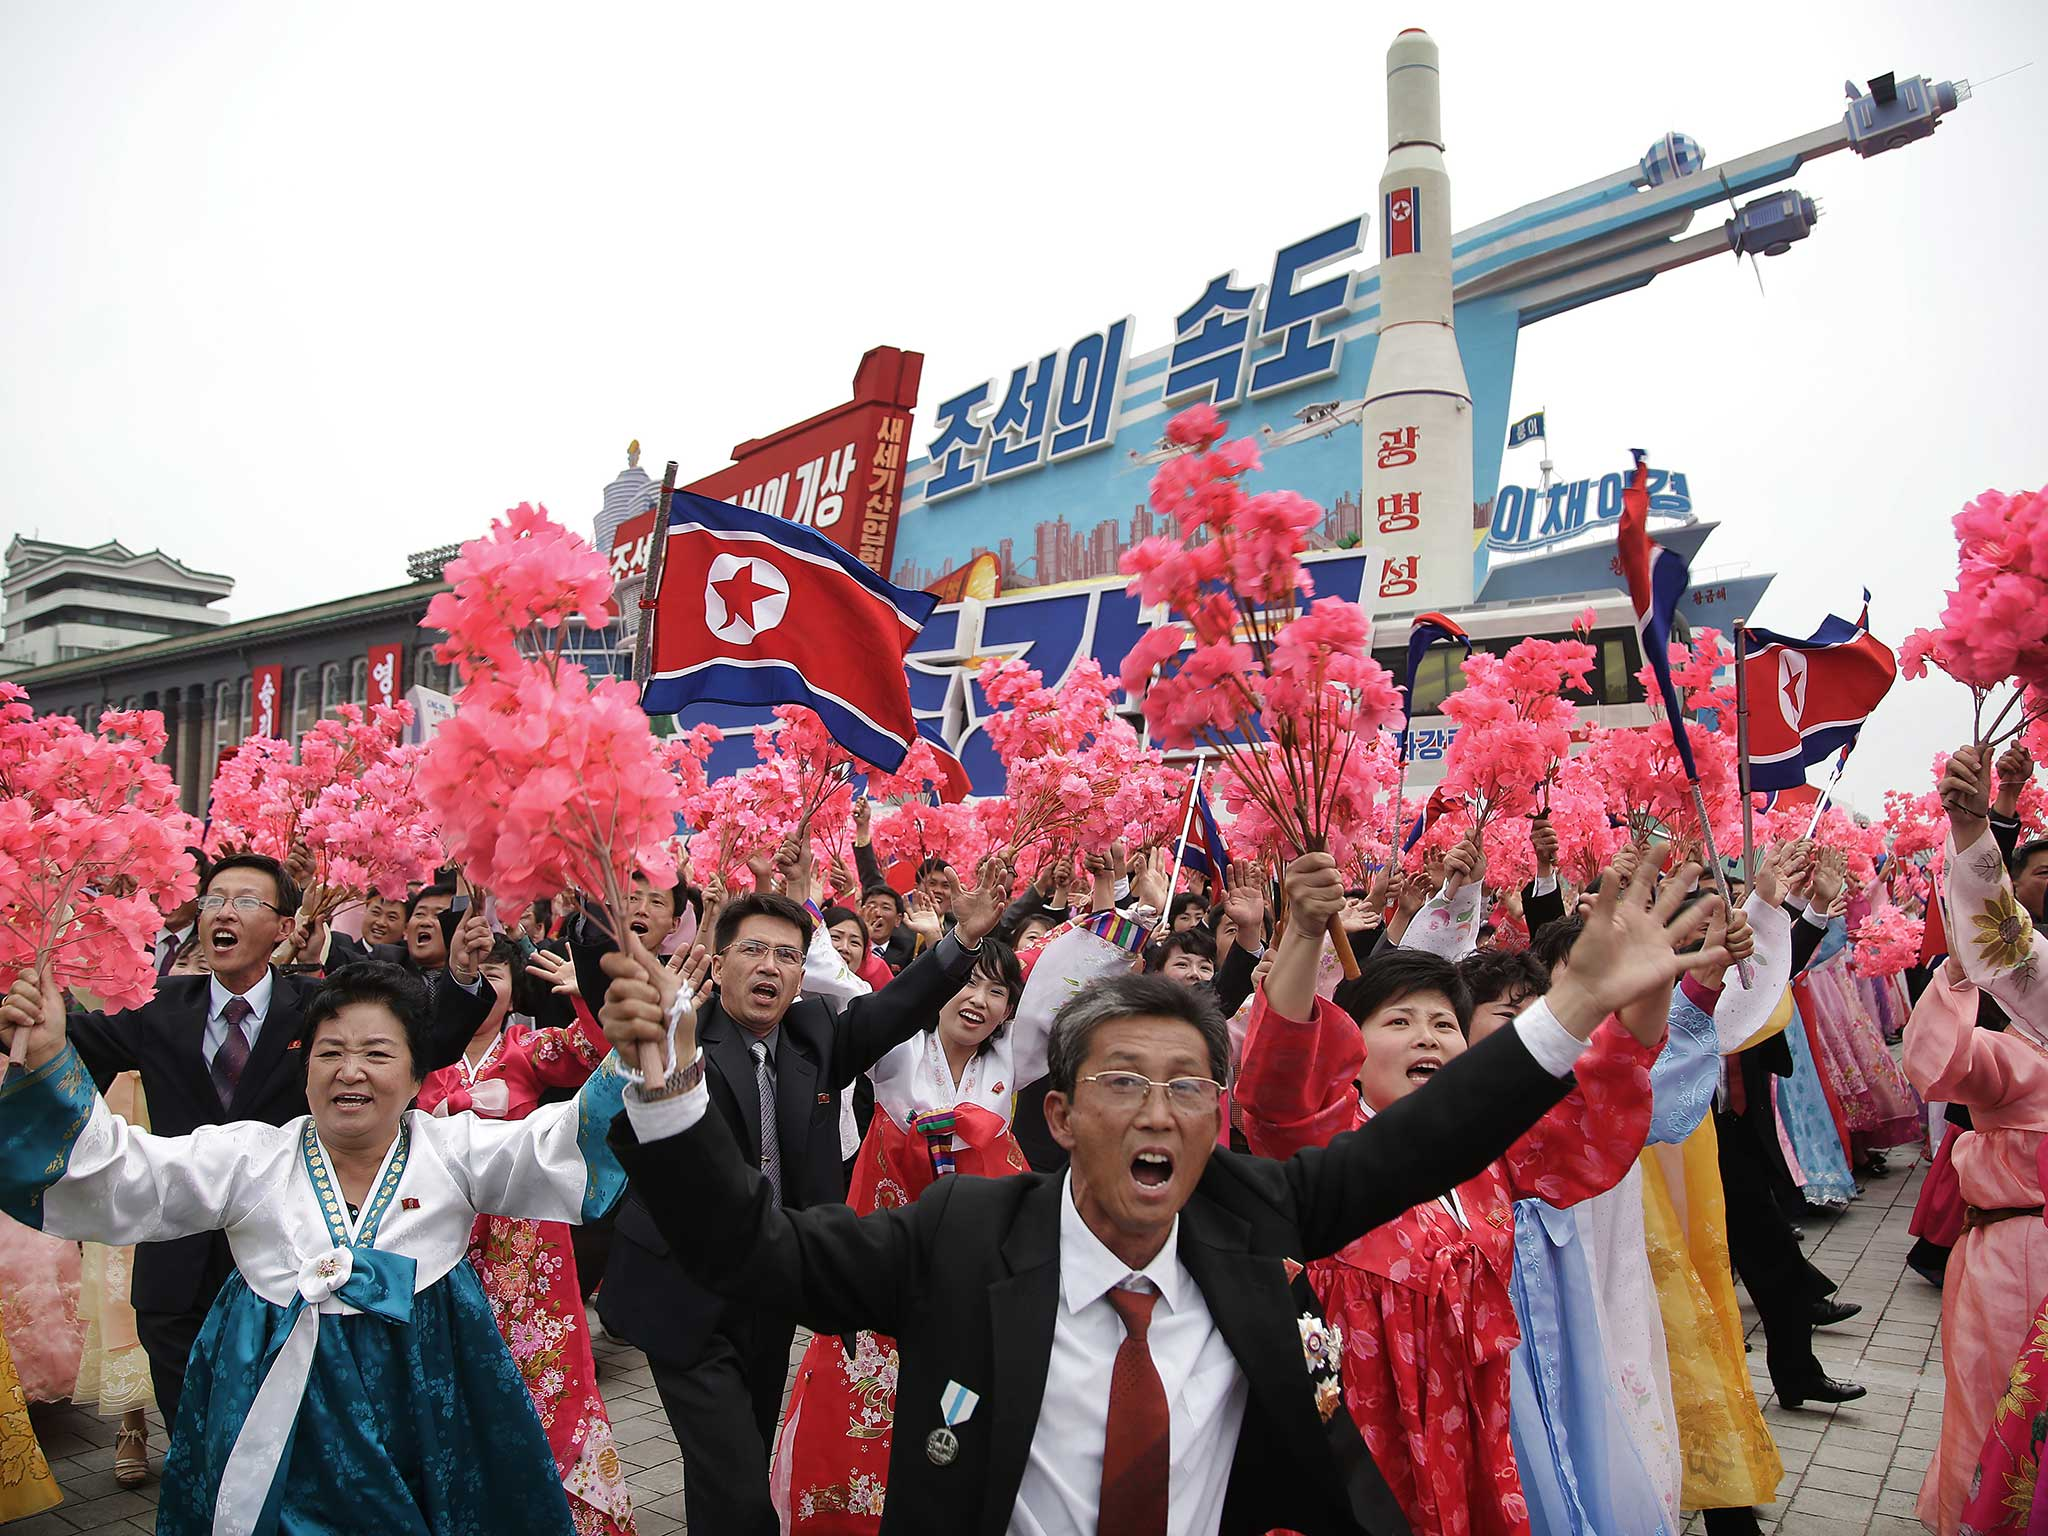 15 Fascinating Facts About North Korea The Independent